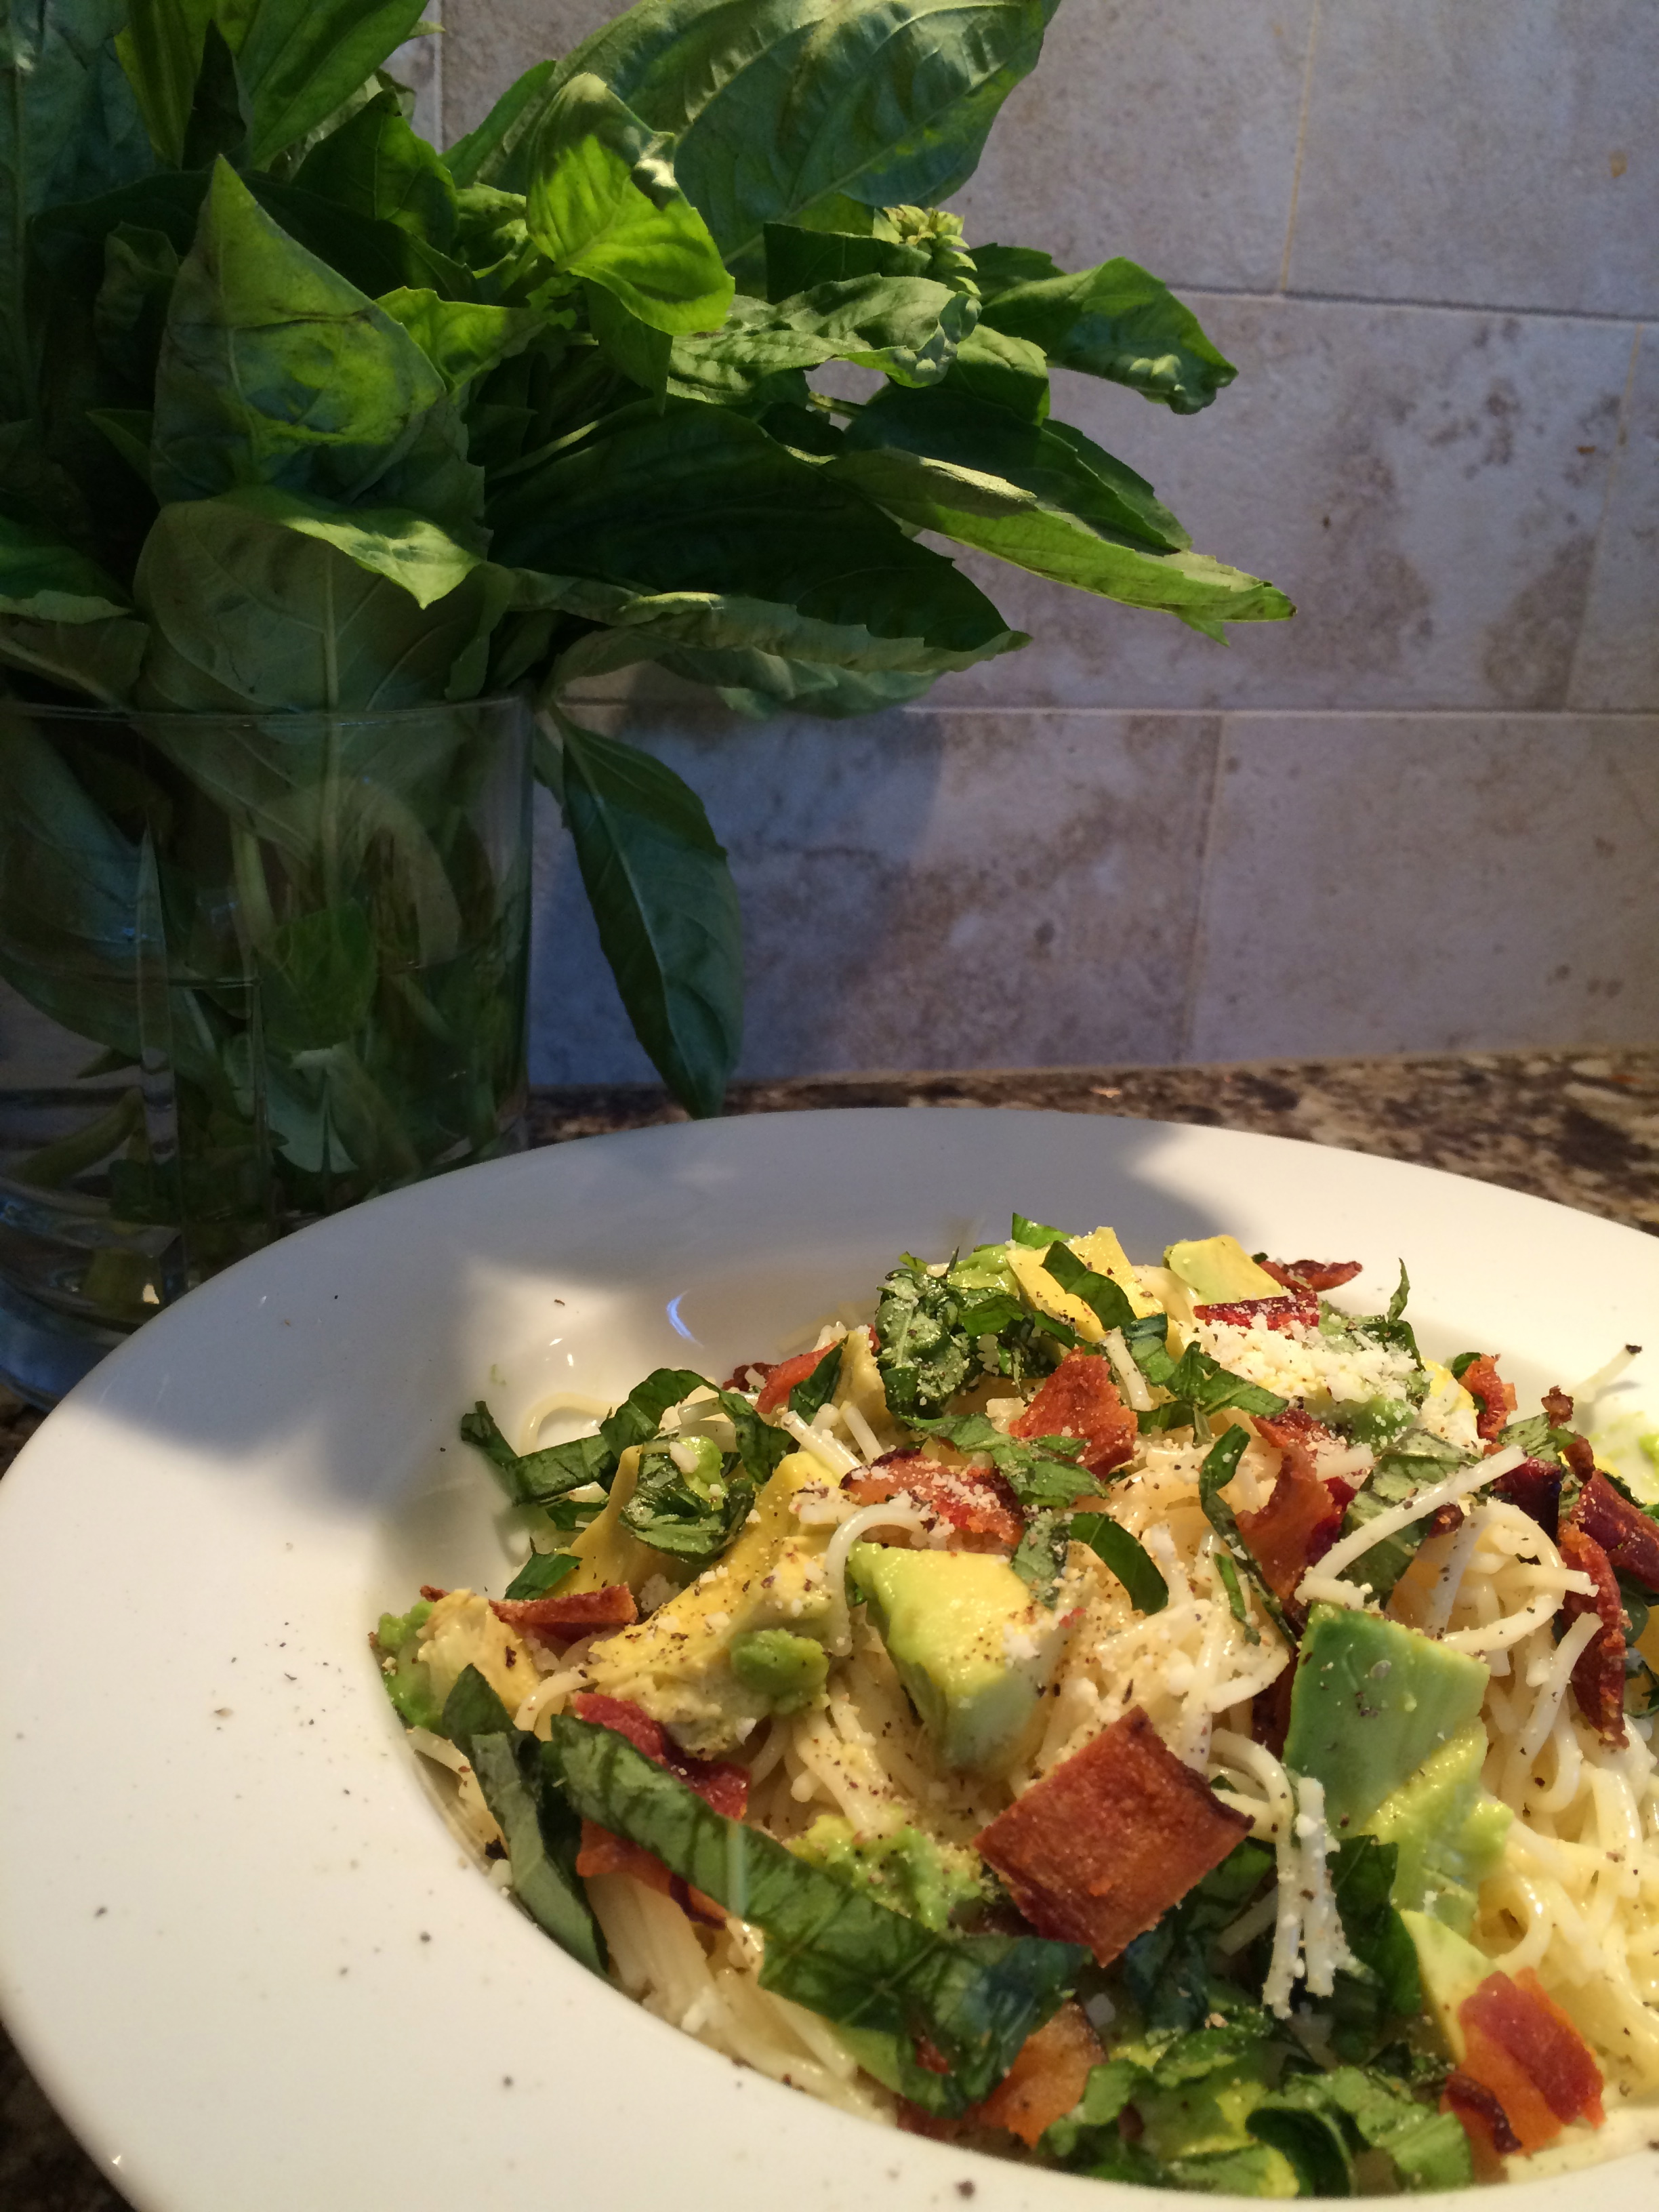 Bacon and Avocado Pasta Salad